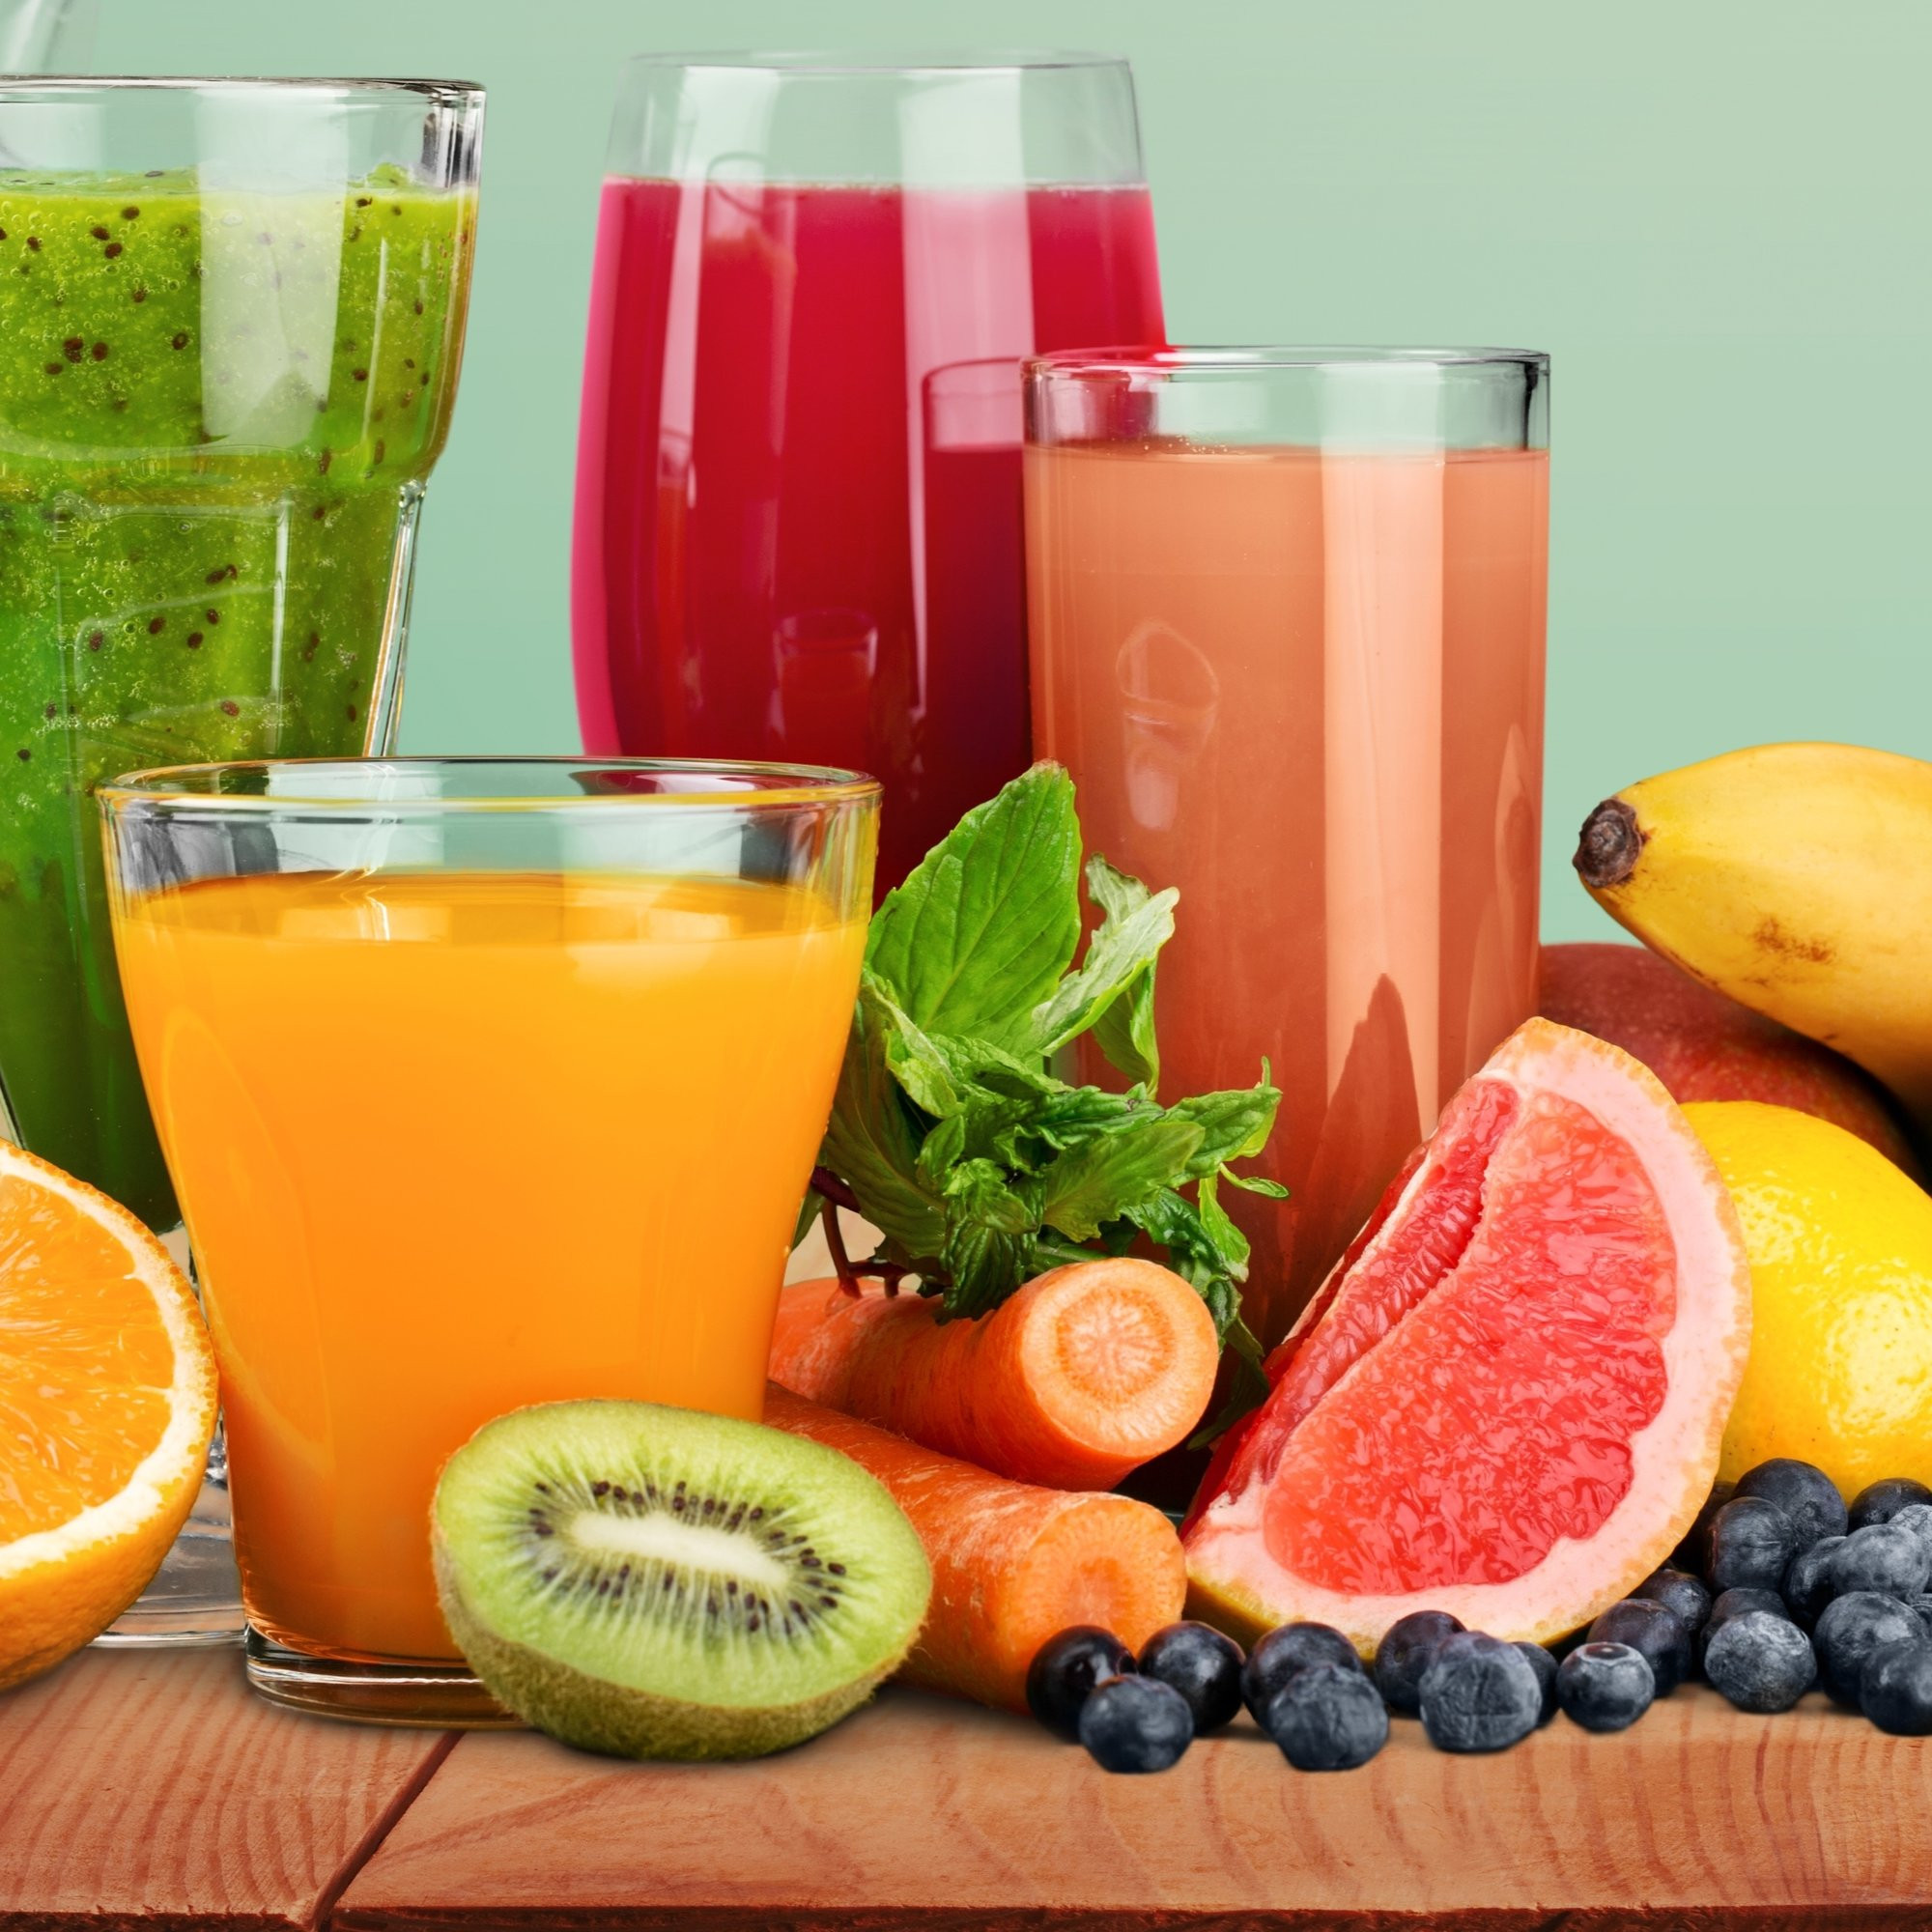 Healthy Juice Smoothies  Juice or Smoothie Which e Is Healthier Nutrition